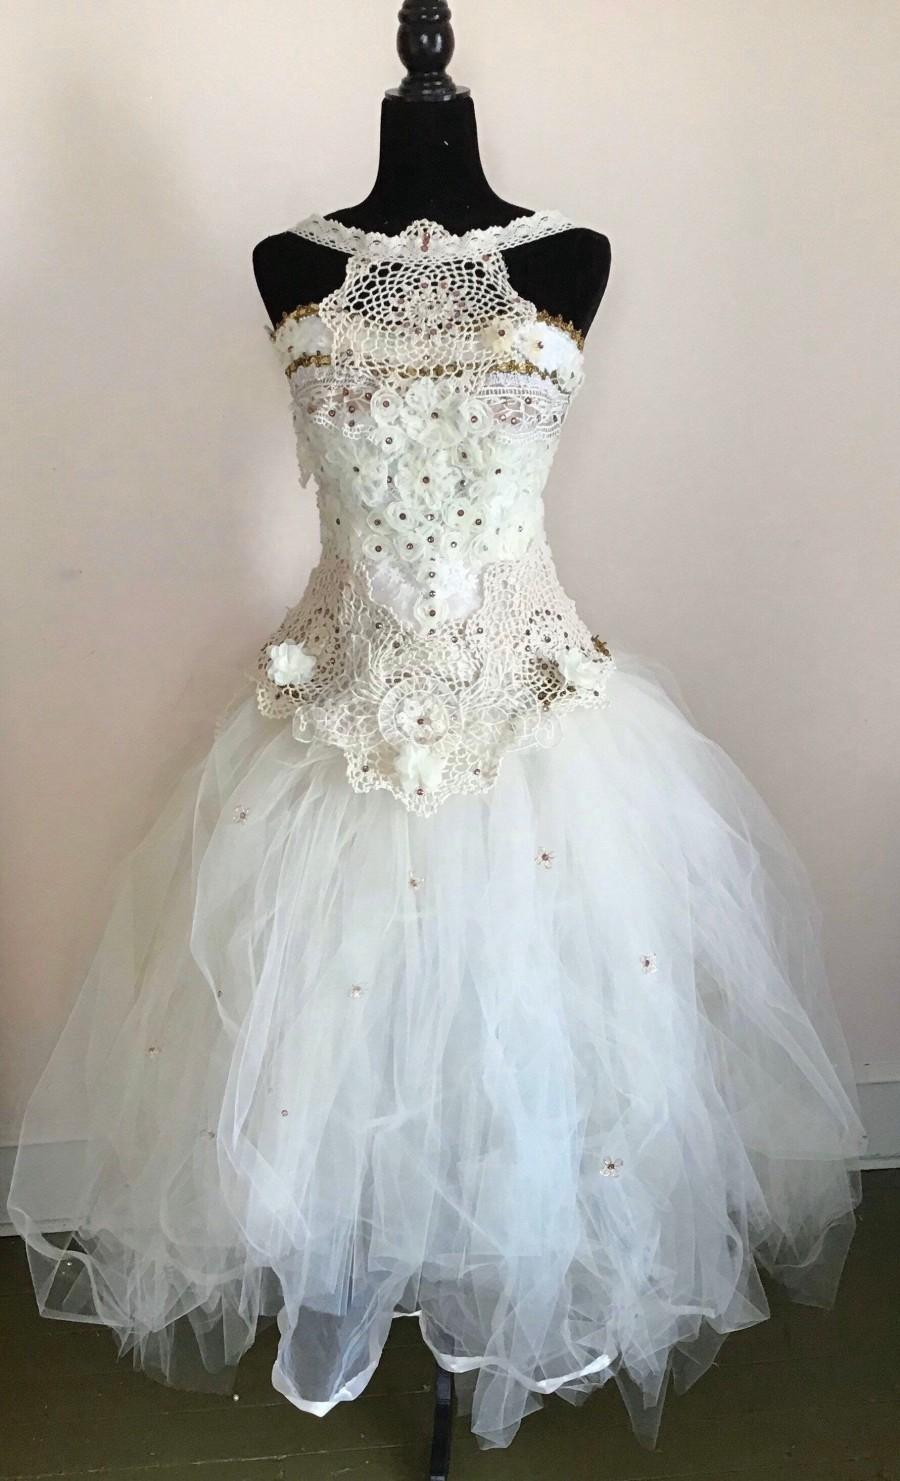 Mariage - Whimsical Bohemian Wedding Dress, Princess Wedding Dress, Garden Wedding Dress, repurposed , sustainable. Eco friendly fashion.